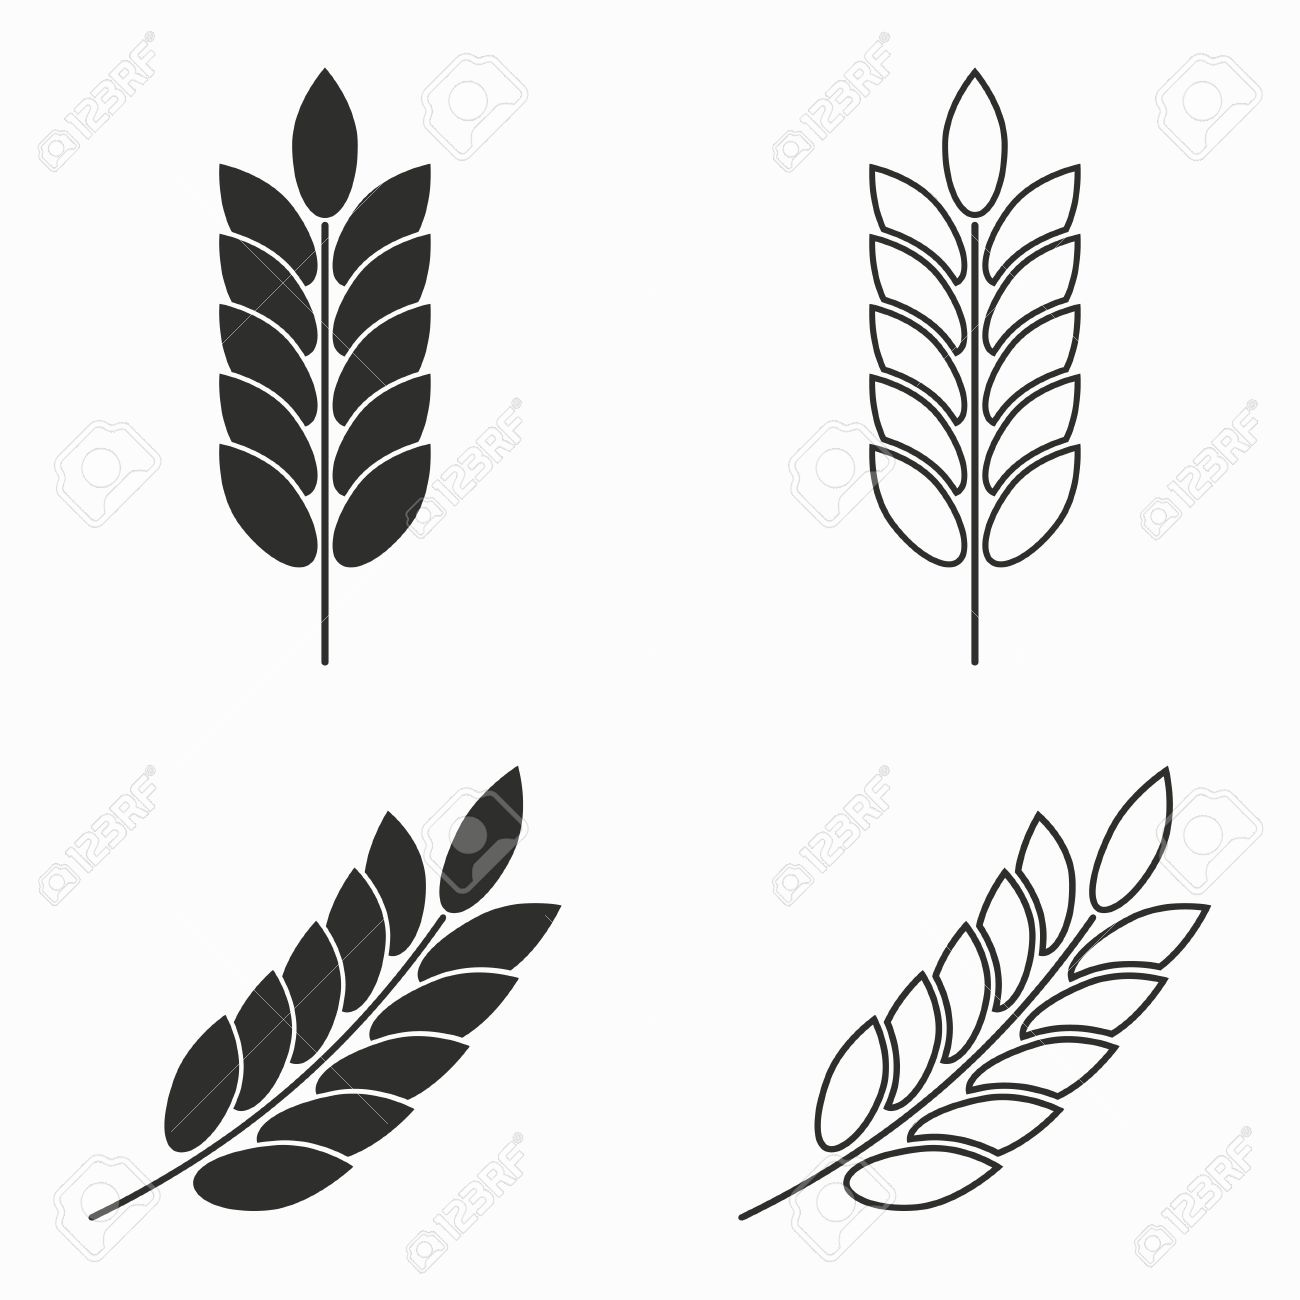 barley vector icons set black illustration isolated on white rh 123rf com barley vector free vector barley and hops